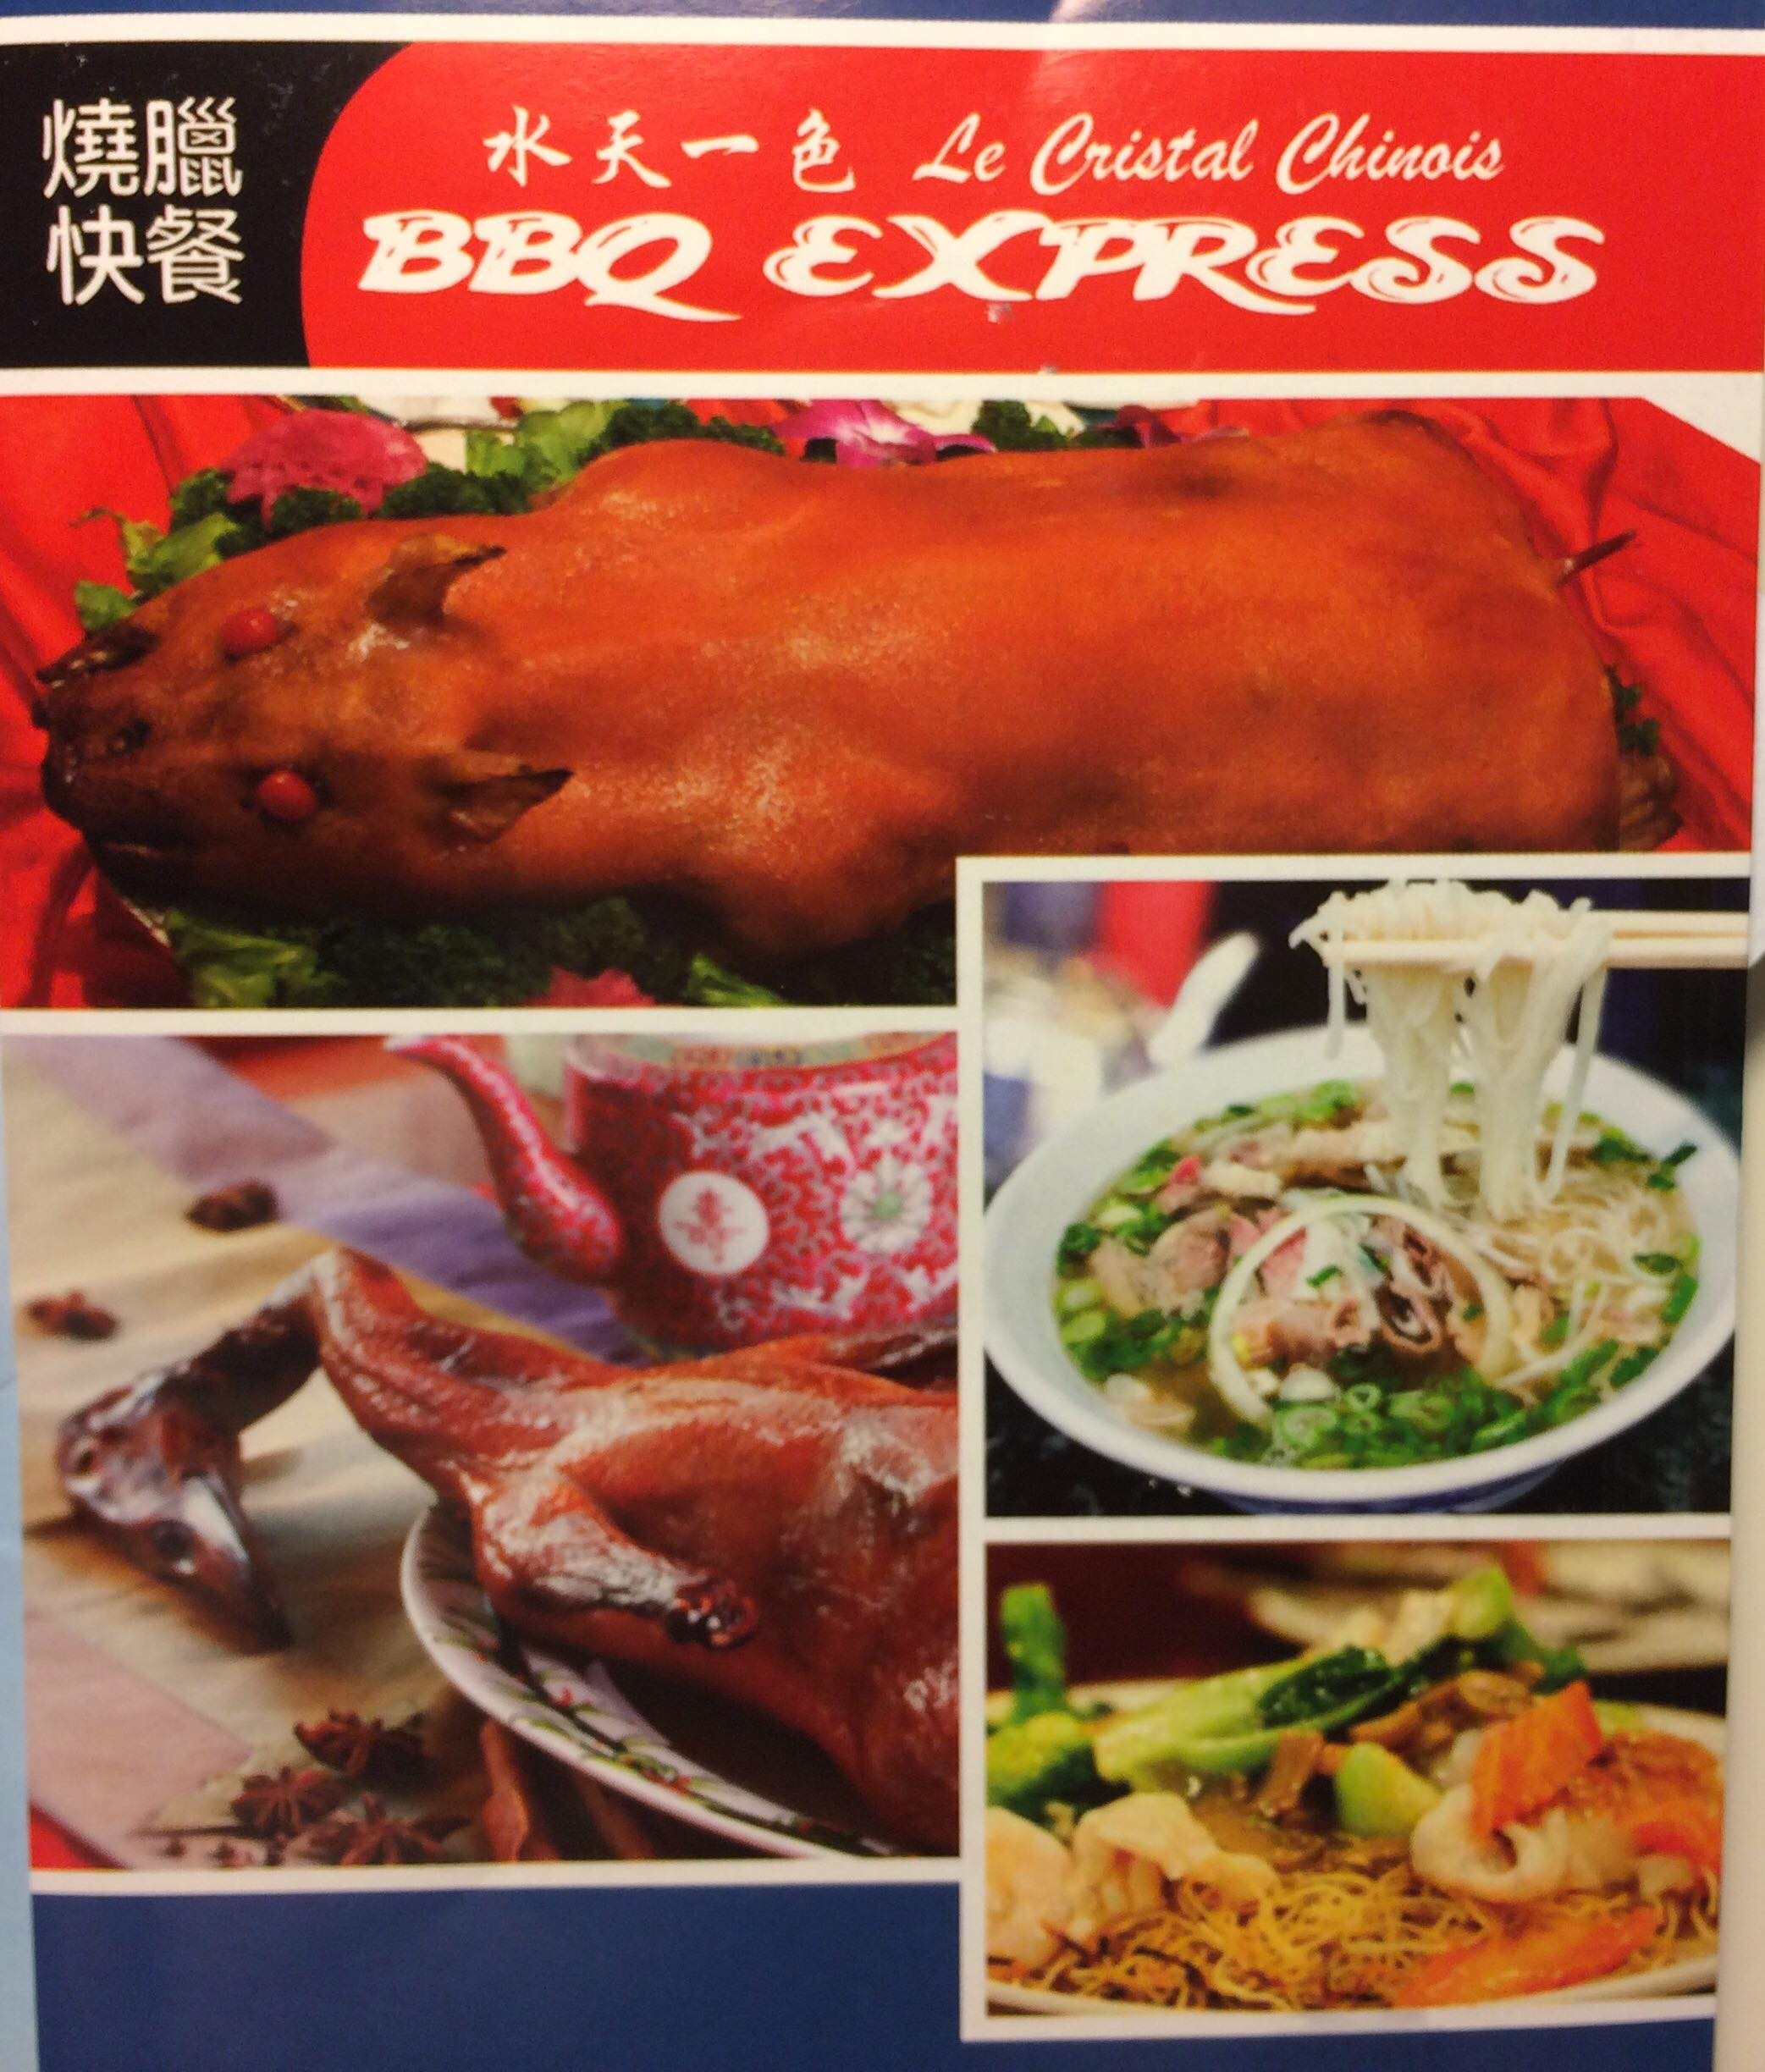 Le Cristal Chinois & BBQ Express - Restaurant